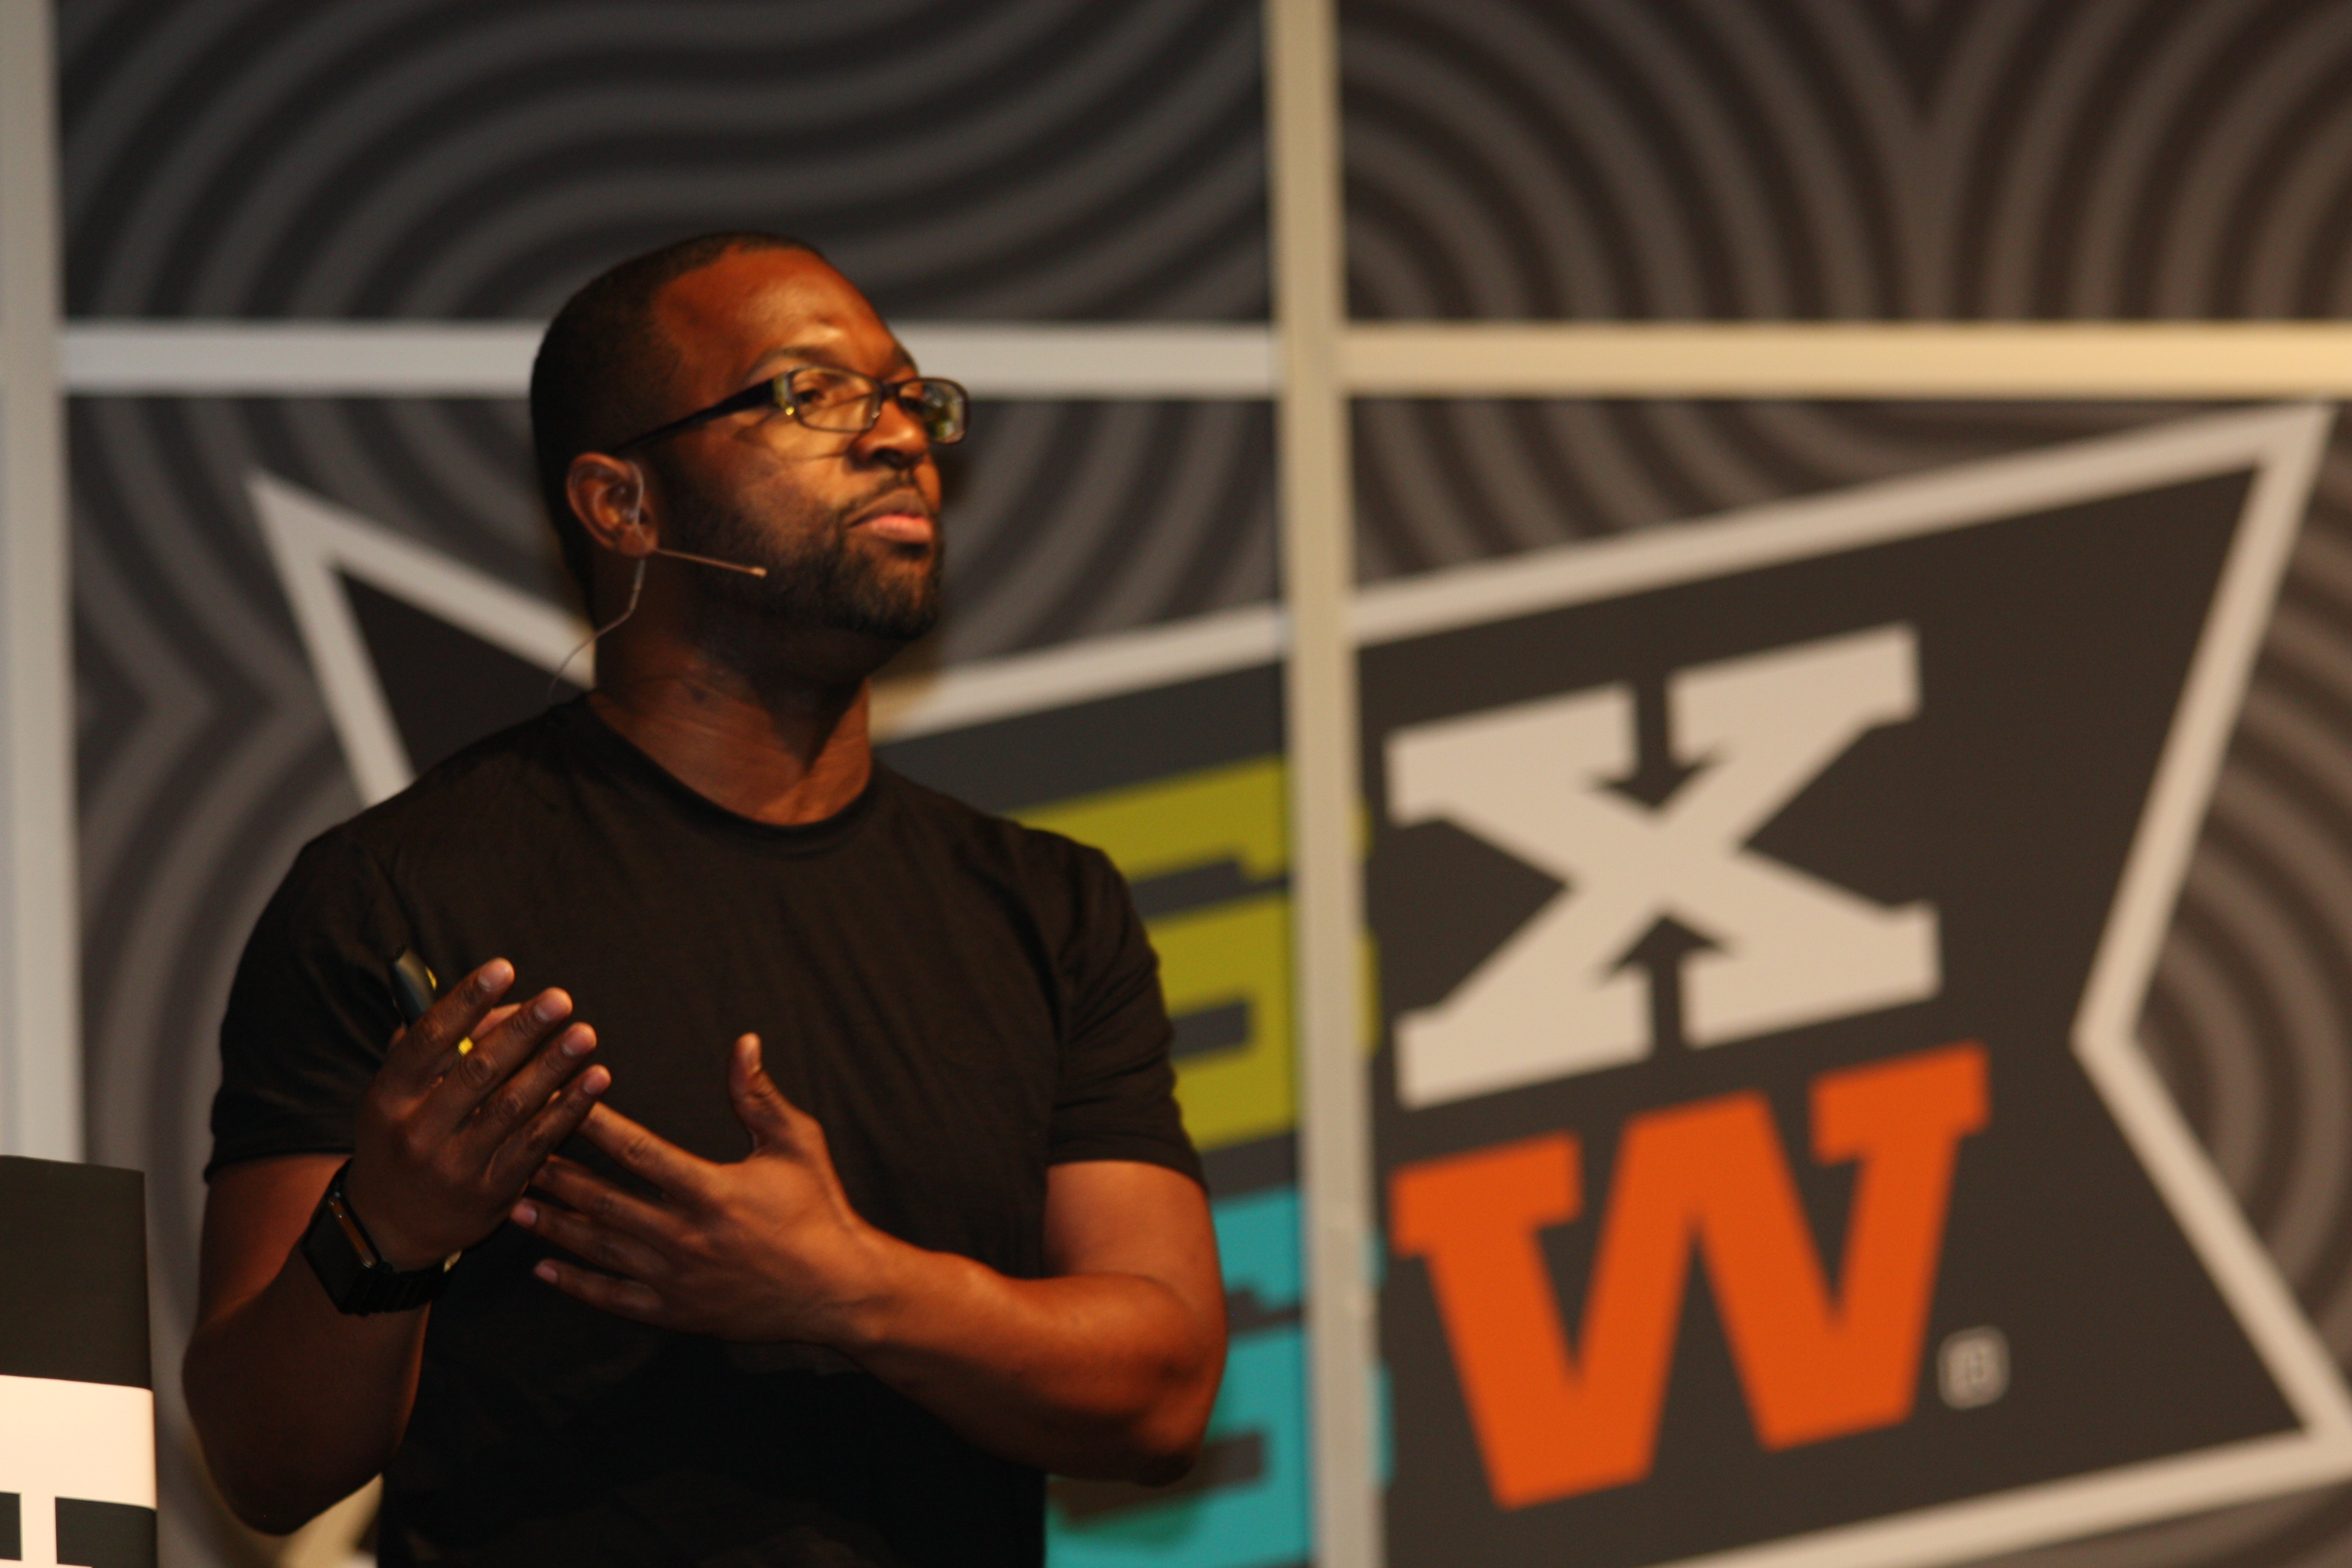 SXSW 2012: Baratunde Thurston Delivers Keynote On Power of Satire